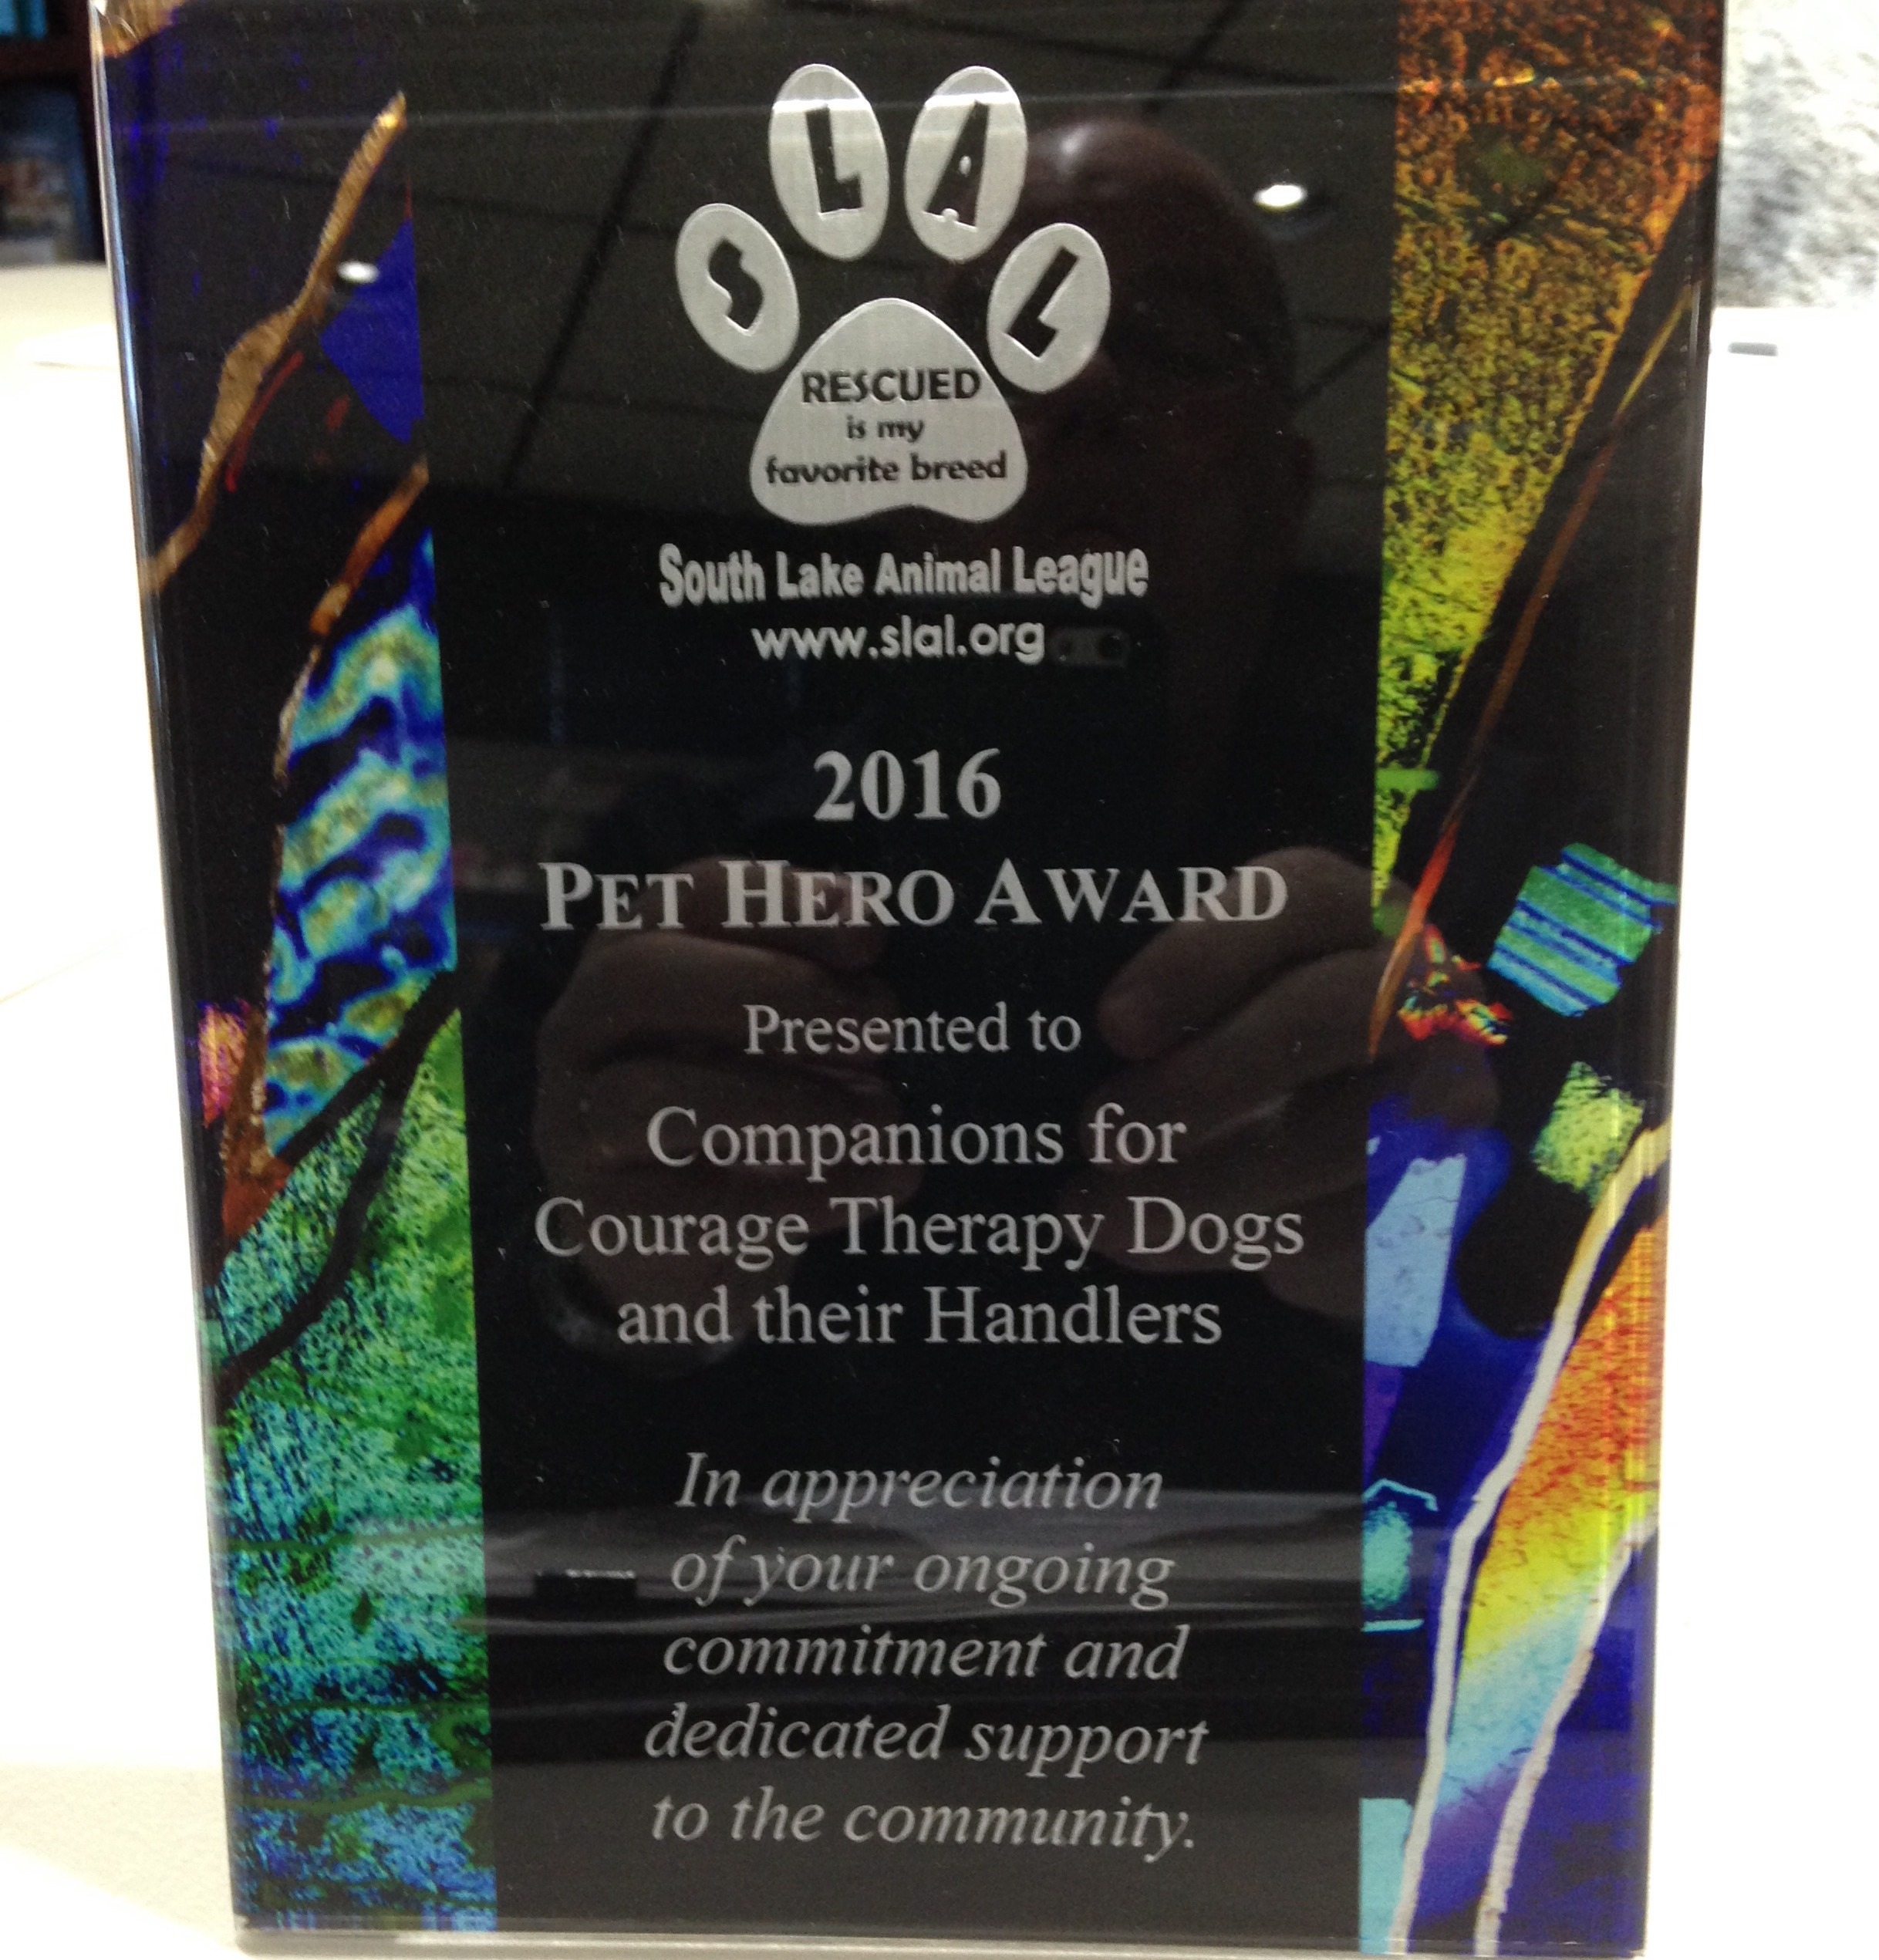 2016 Pet Hero Award - South Lake Animal League